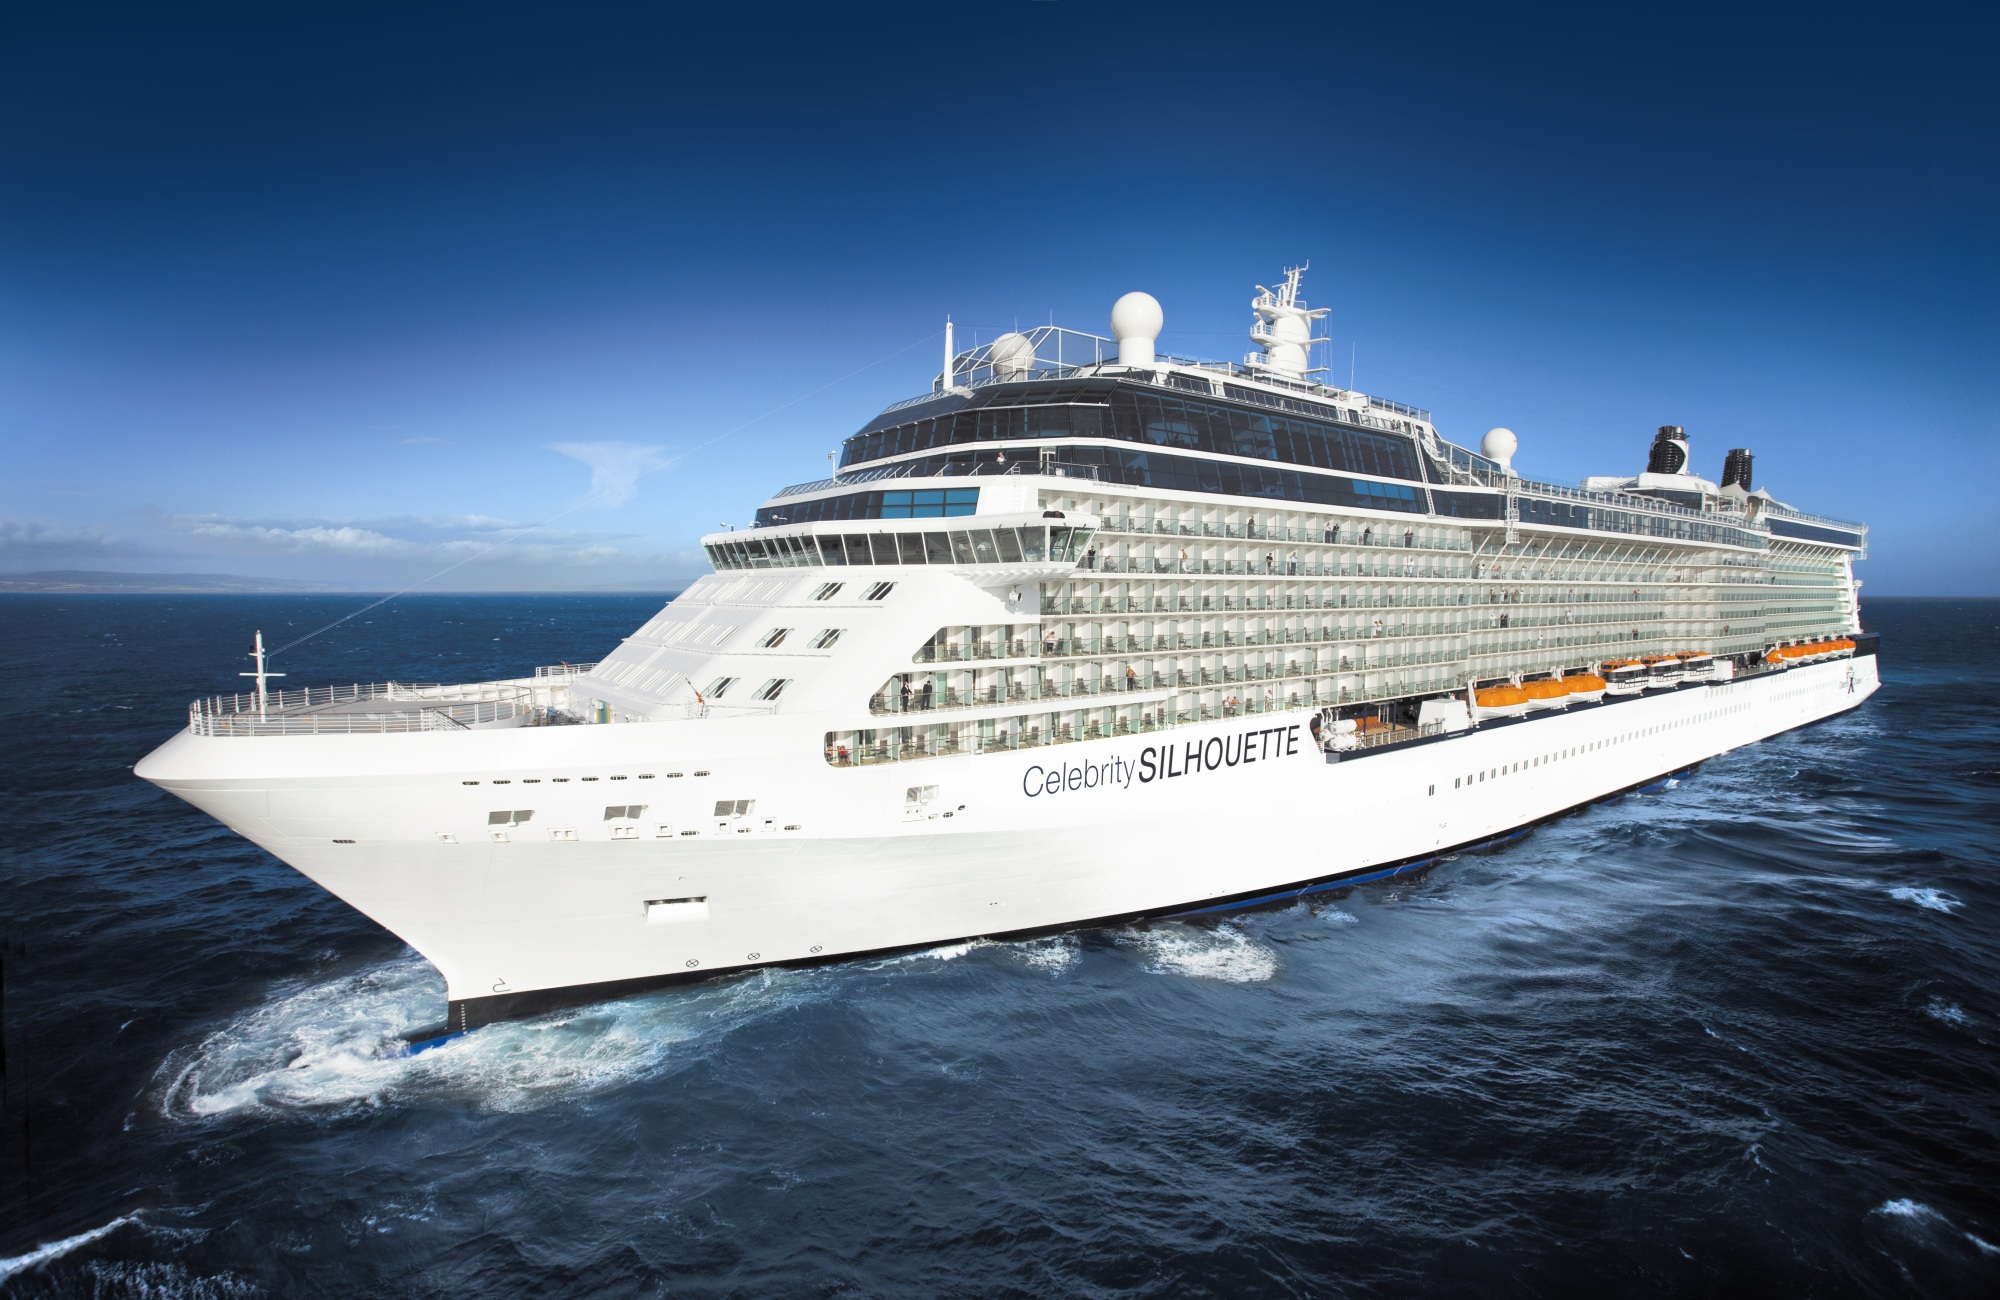 Specialty restaurants read a celebrity silhouette cruise review